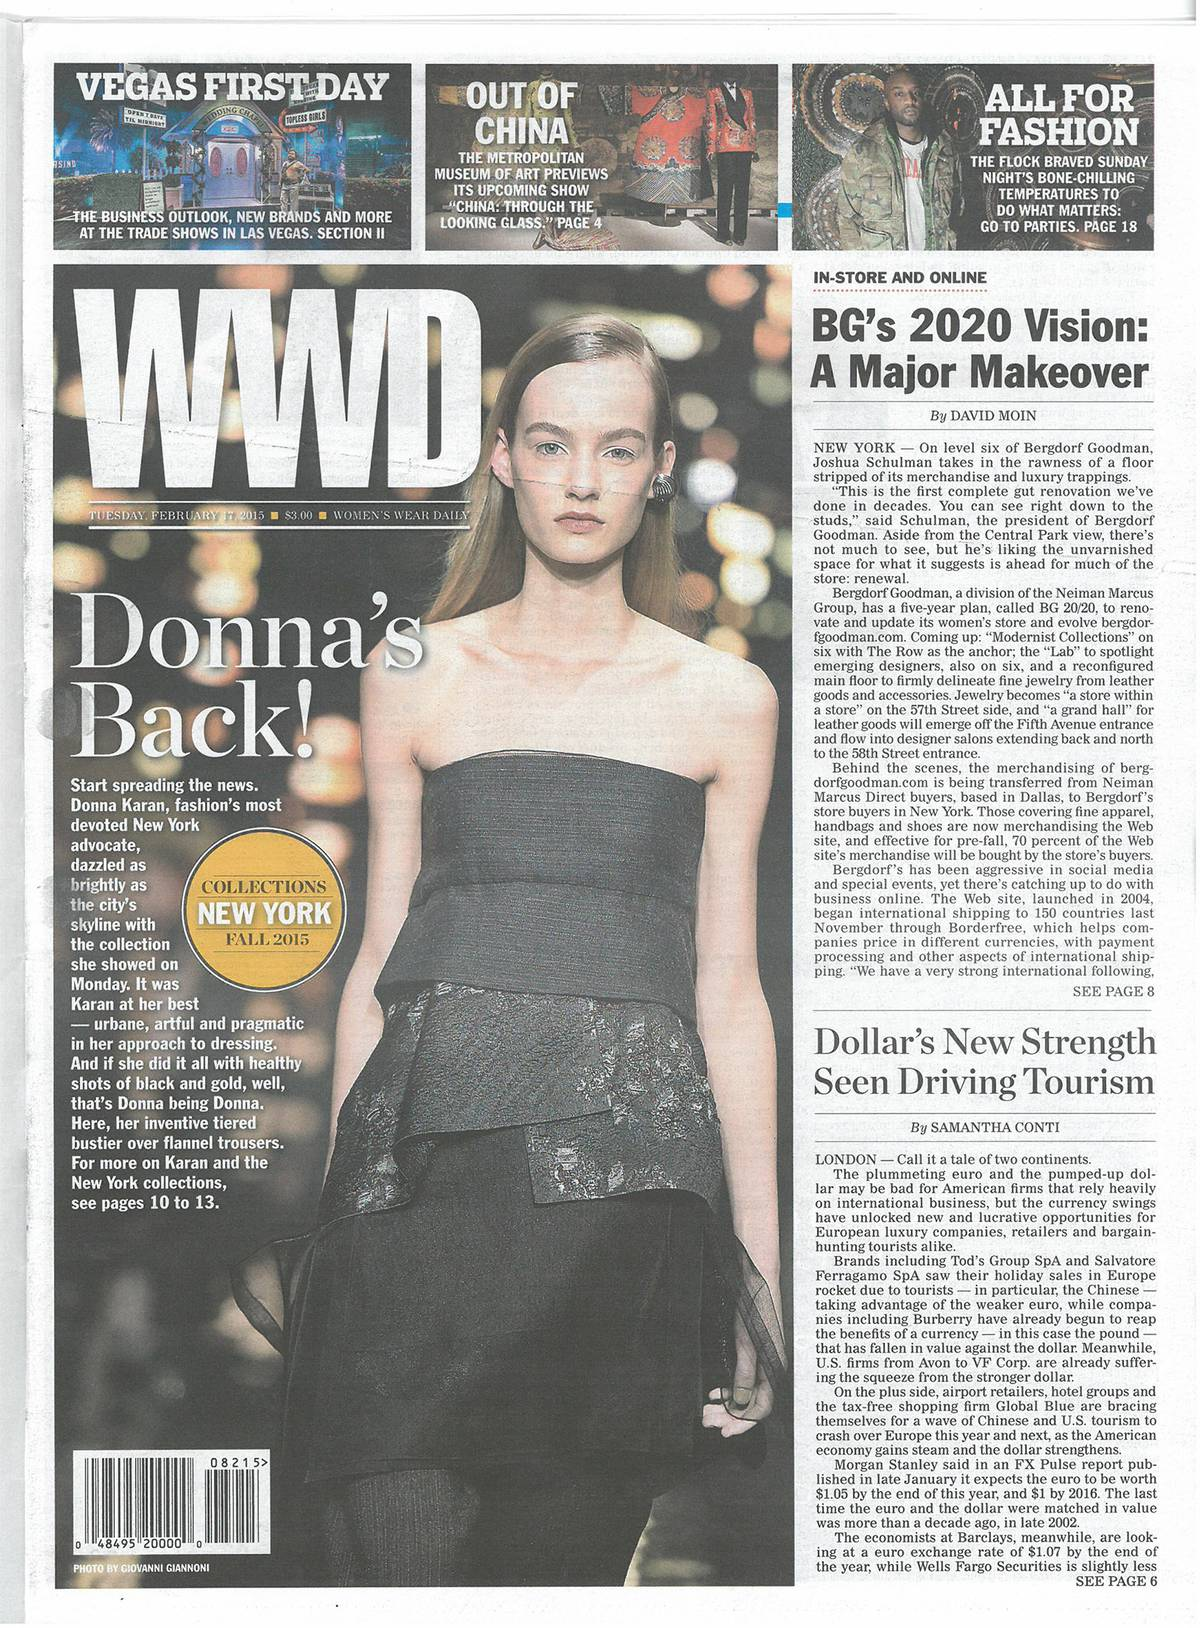 Bergdorf Goodman Jewelry Salon in WWD - Architect: Neumann & Rudy